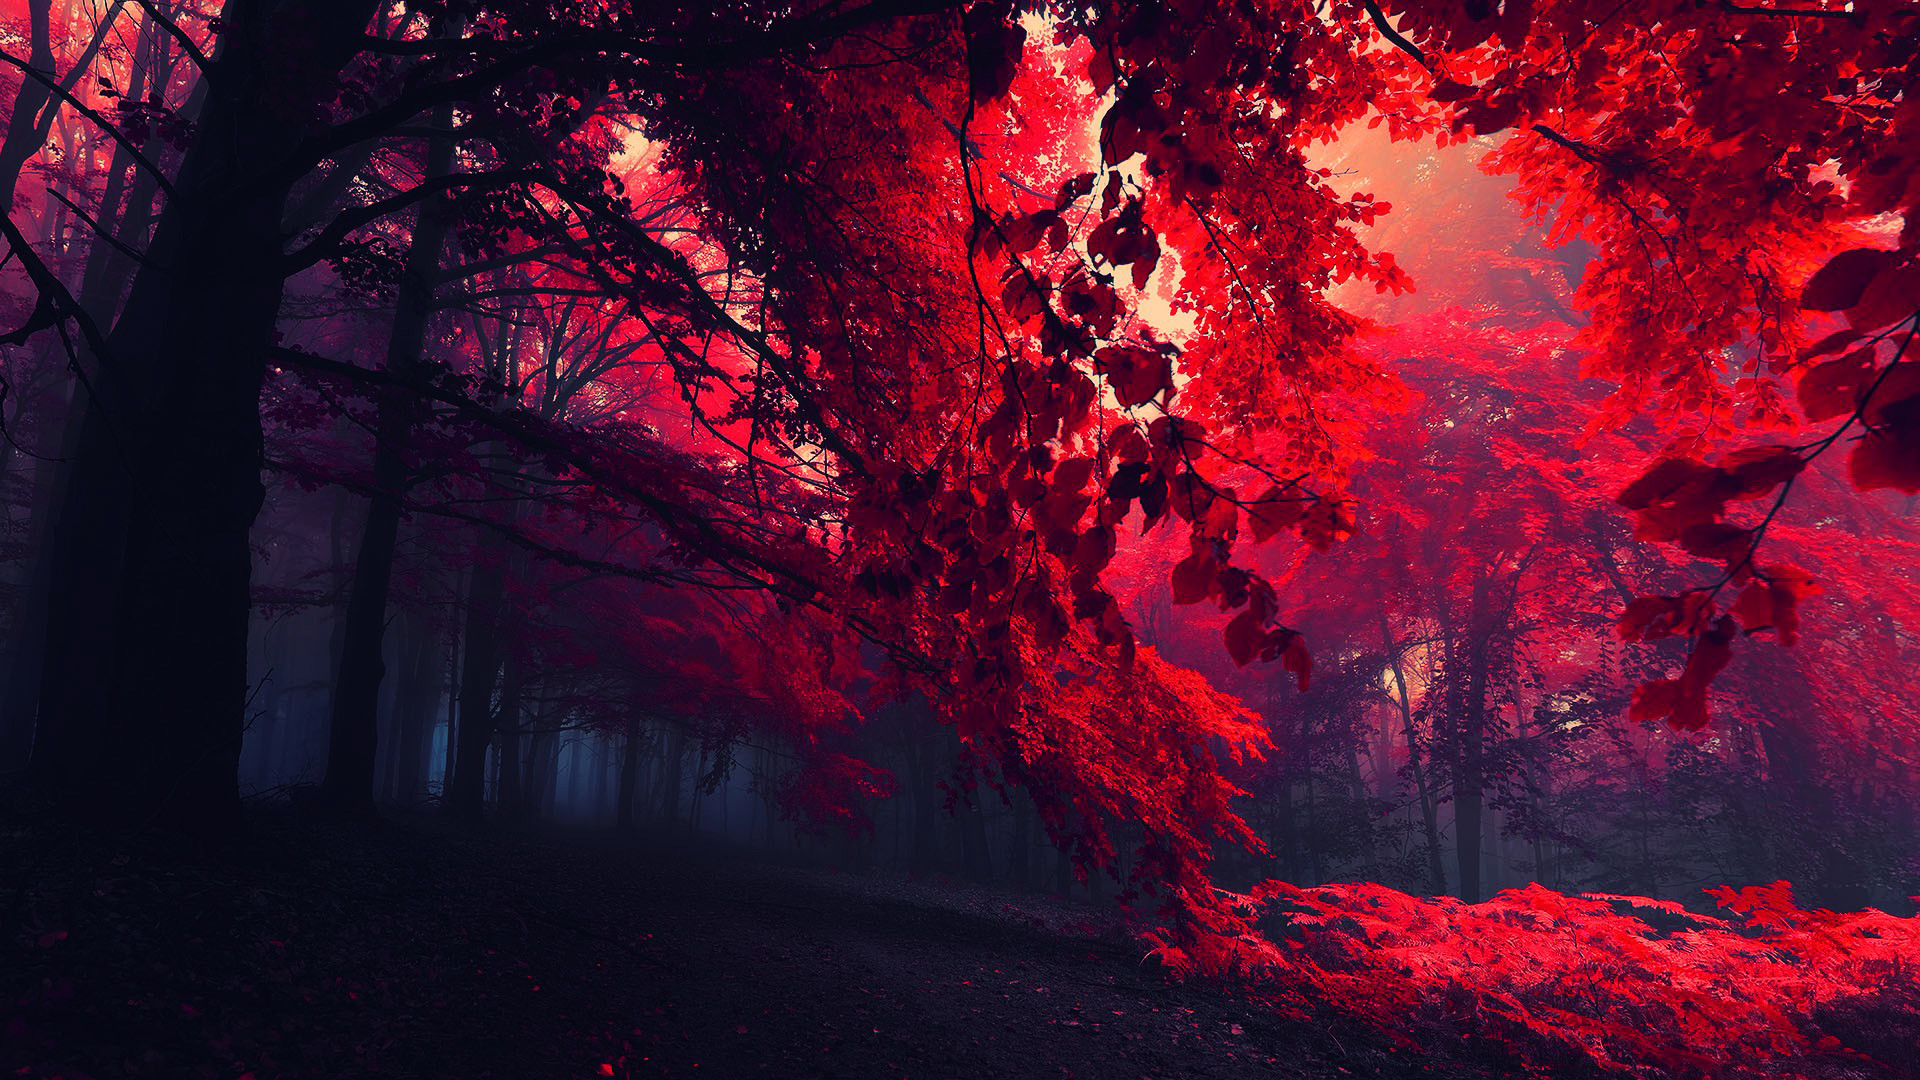 1920x1080 Red-leaves-dark-forest-fall-hd-wallpaper vvallpaper net.jpg